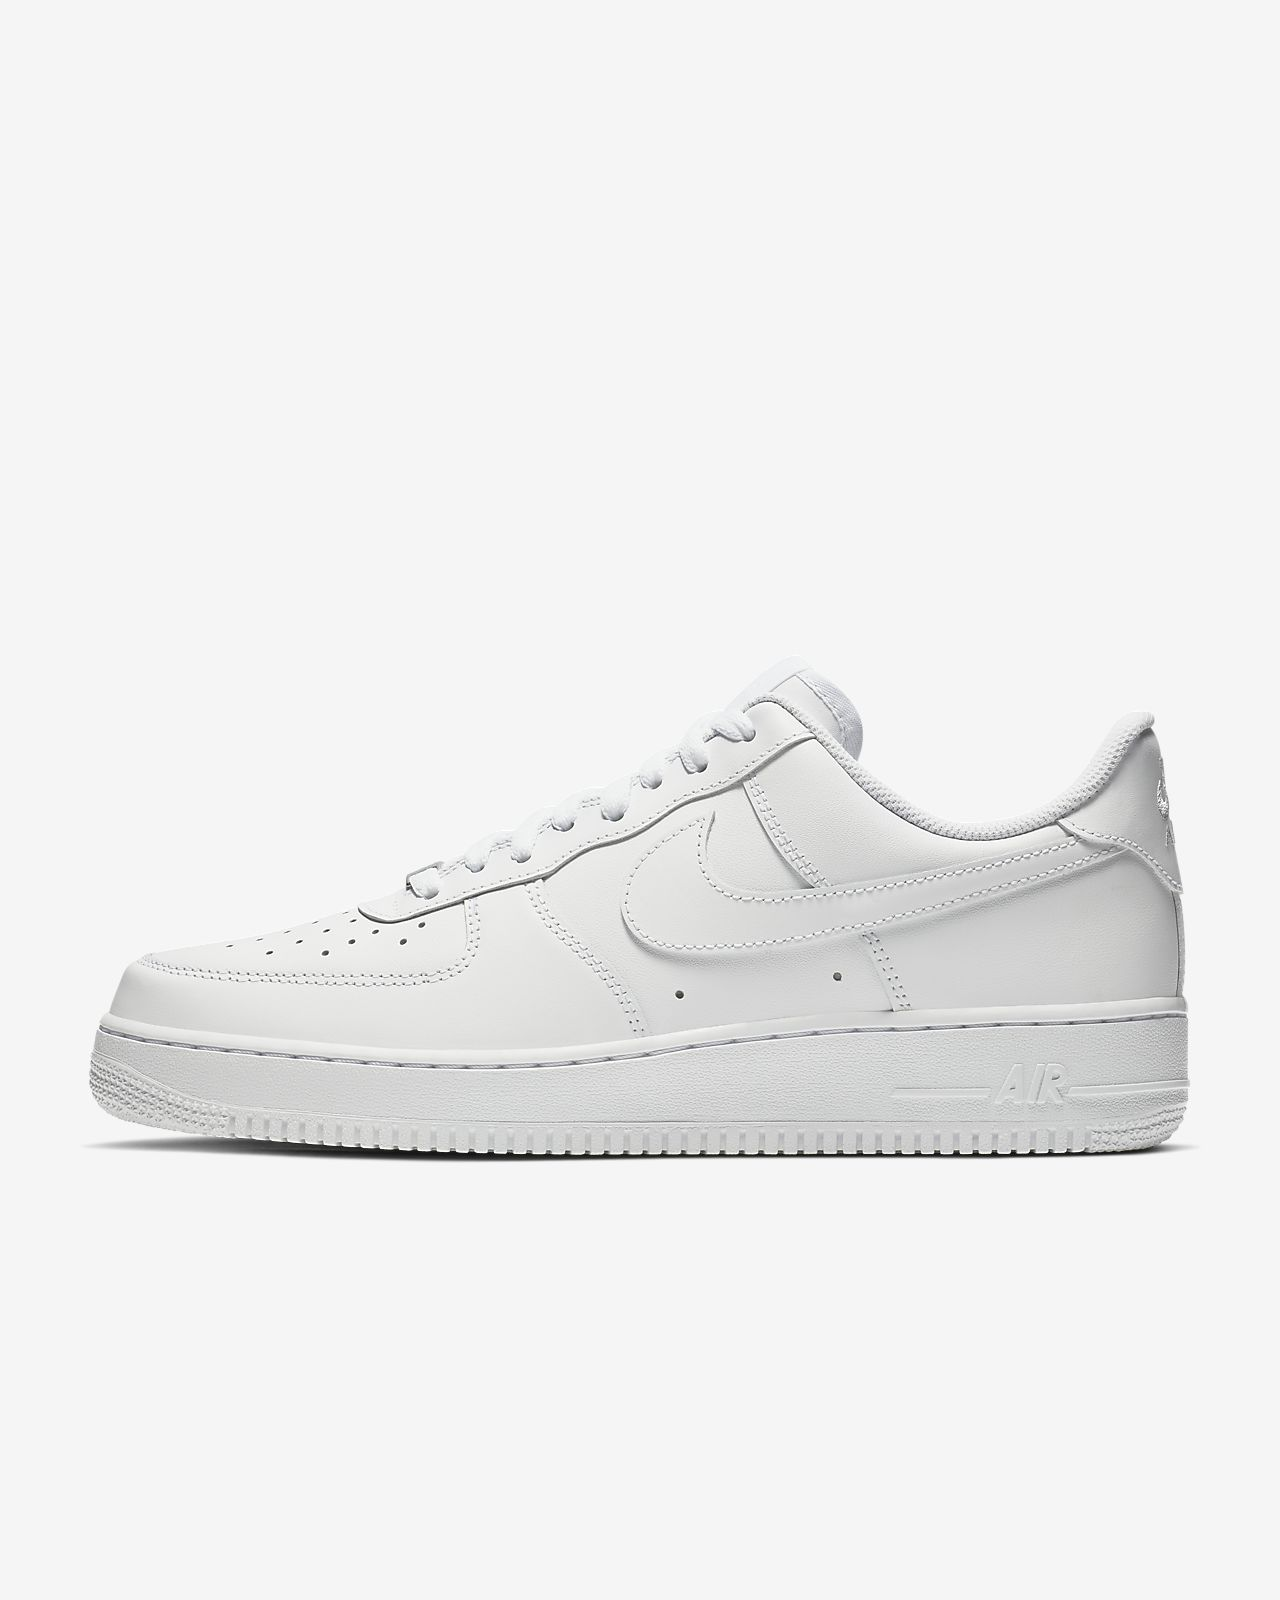 reputable site 09ce2 376e1 Men s Shoe. Nike Air Force 1  07